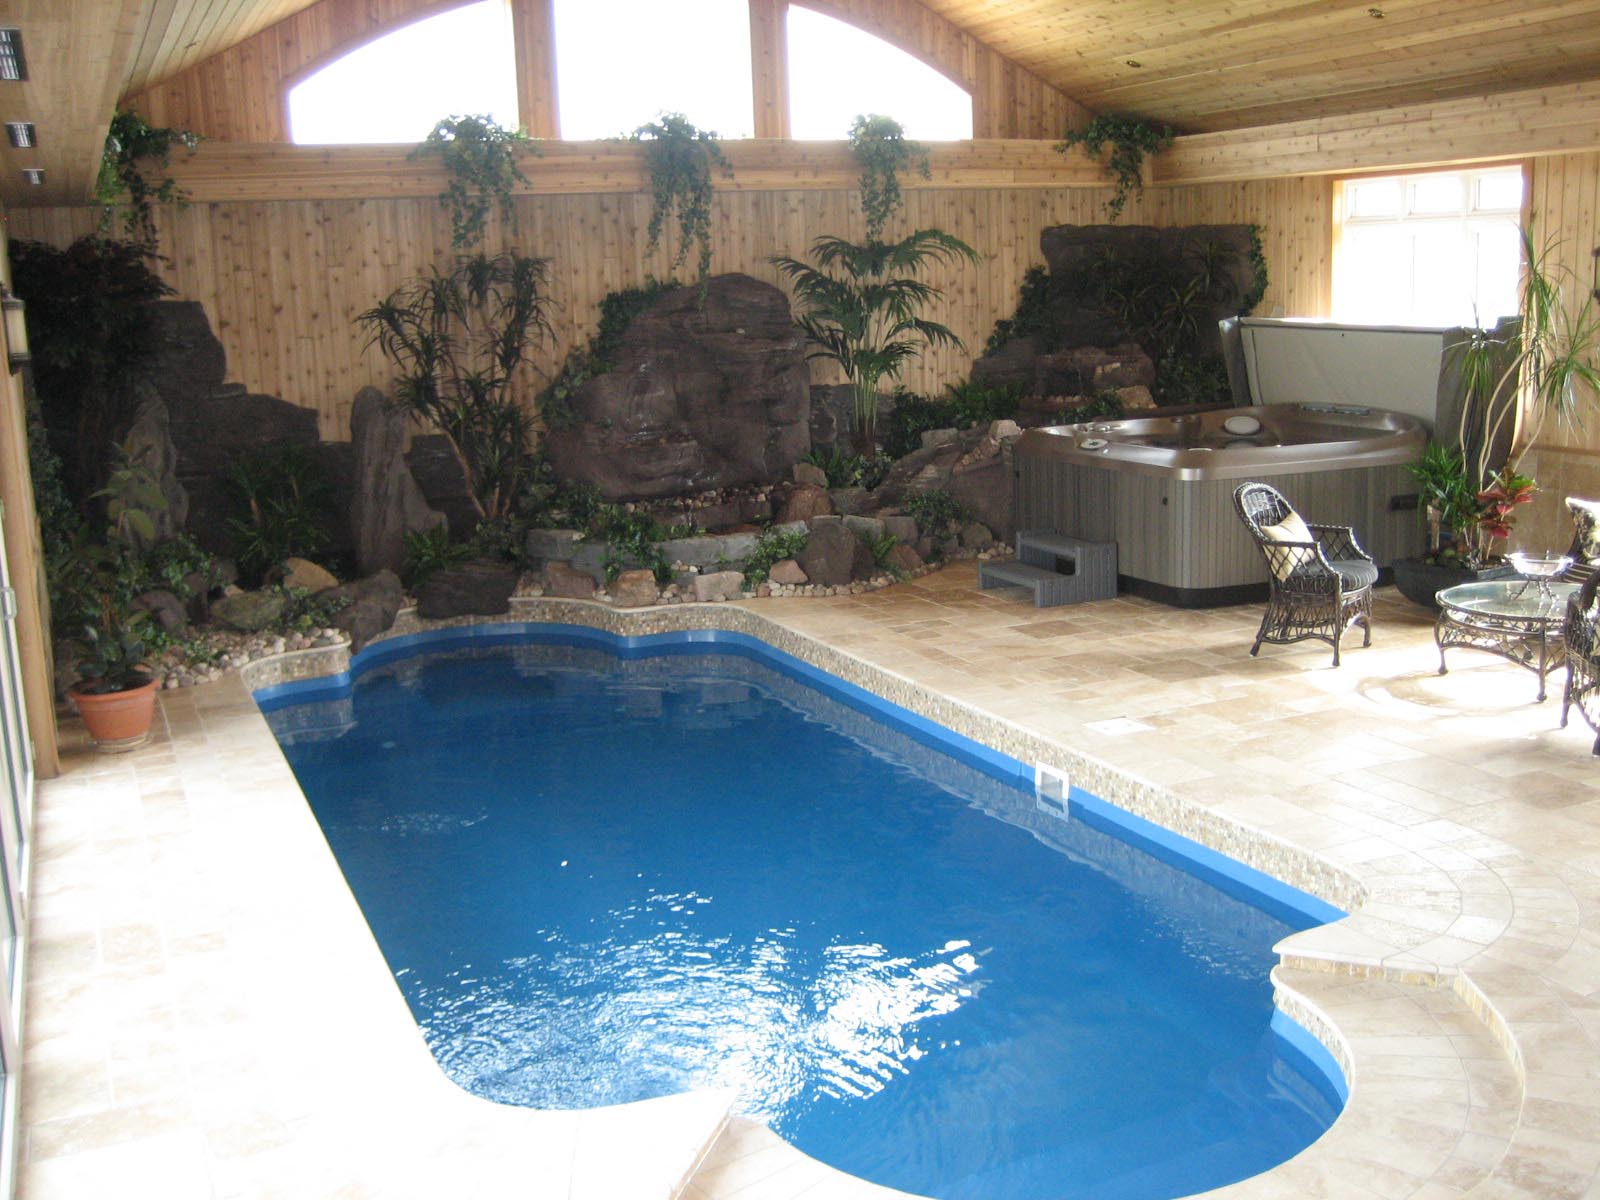 Indoor Pool Ideas Small Indoor Pool Ideas  Backyard Design Ideas